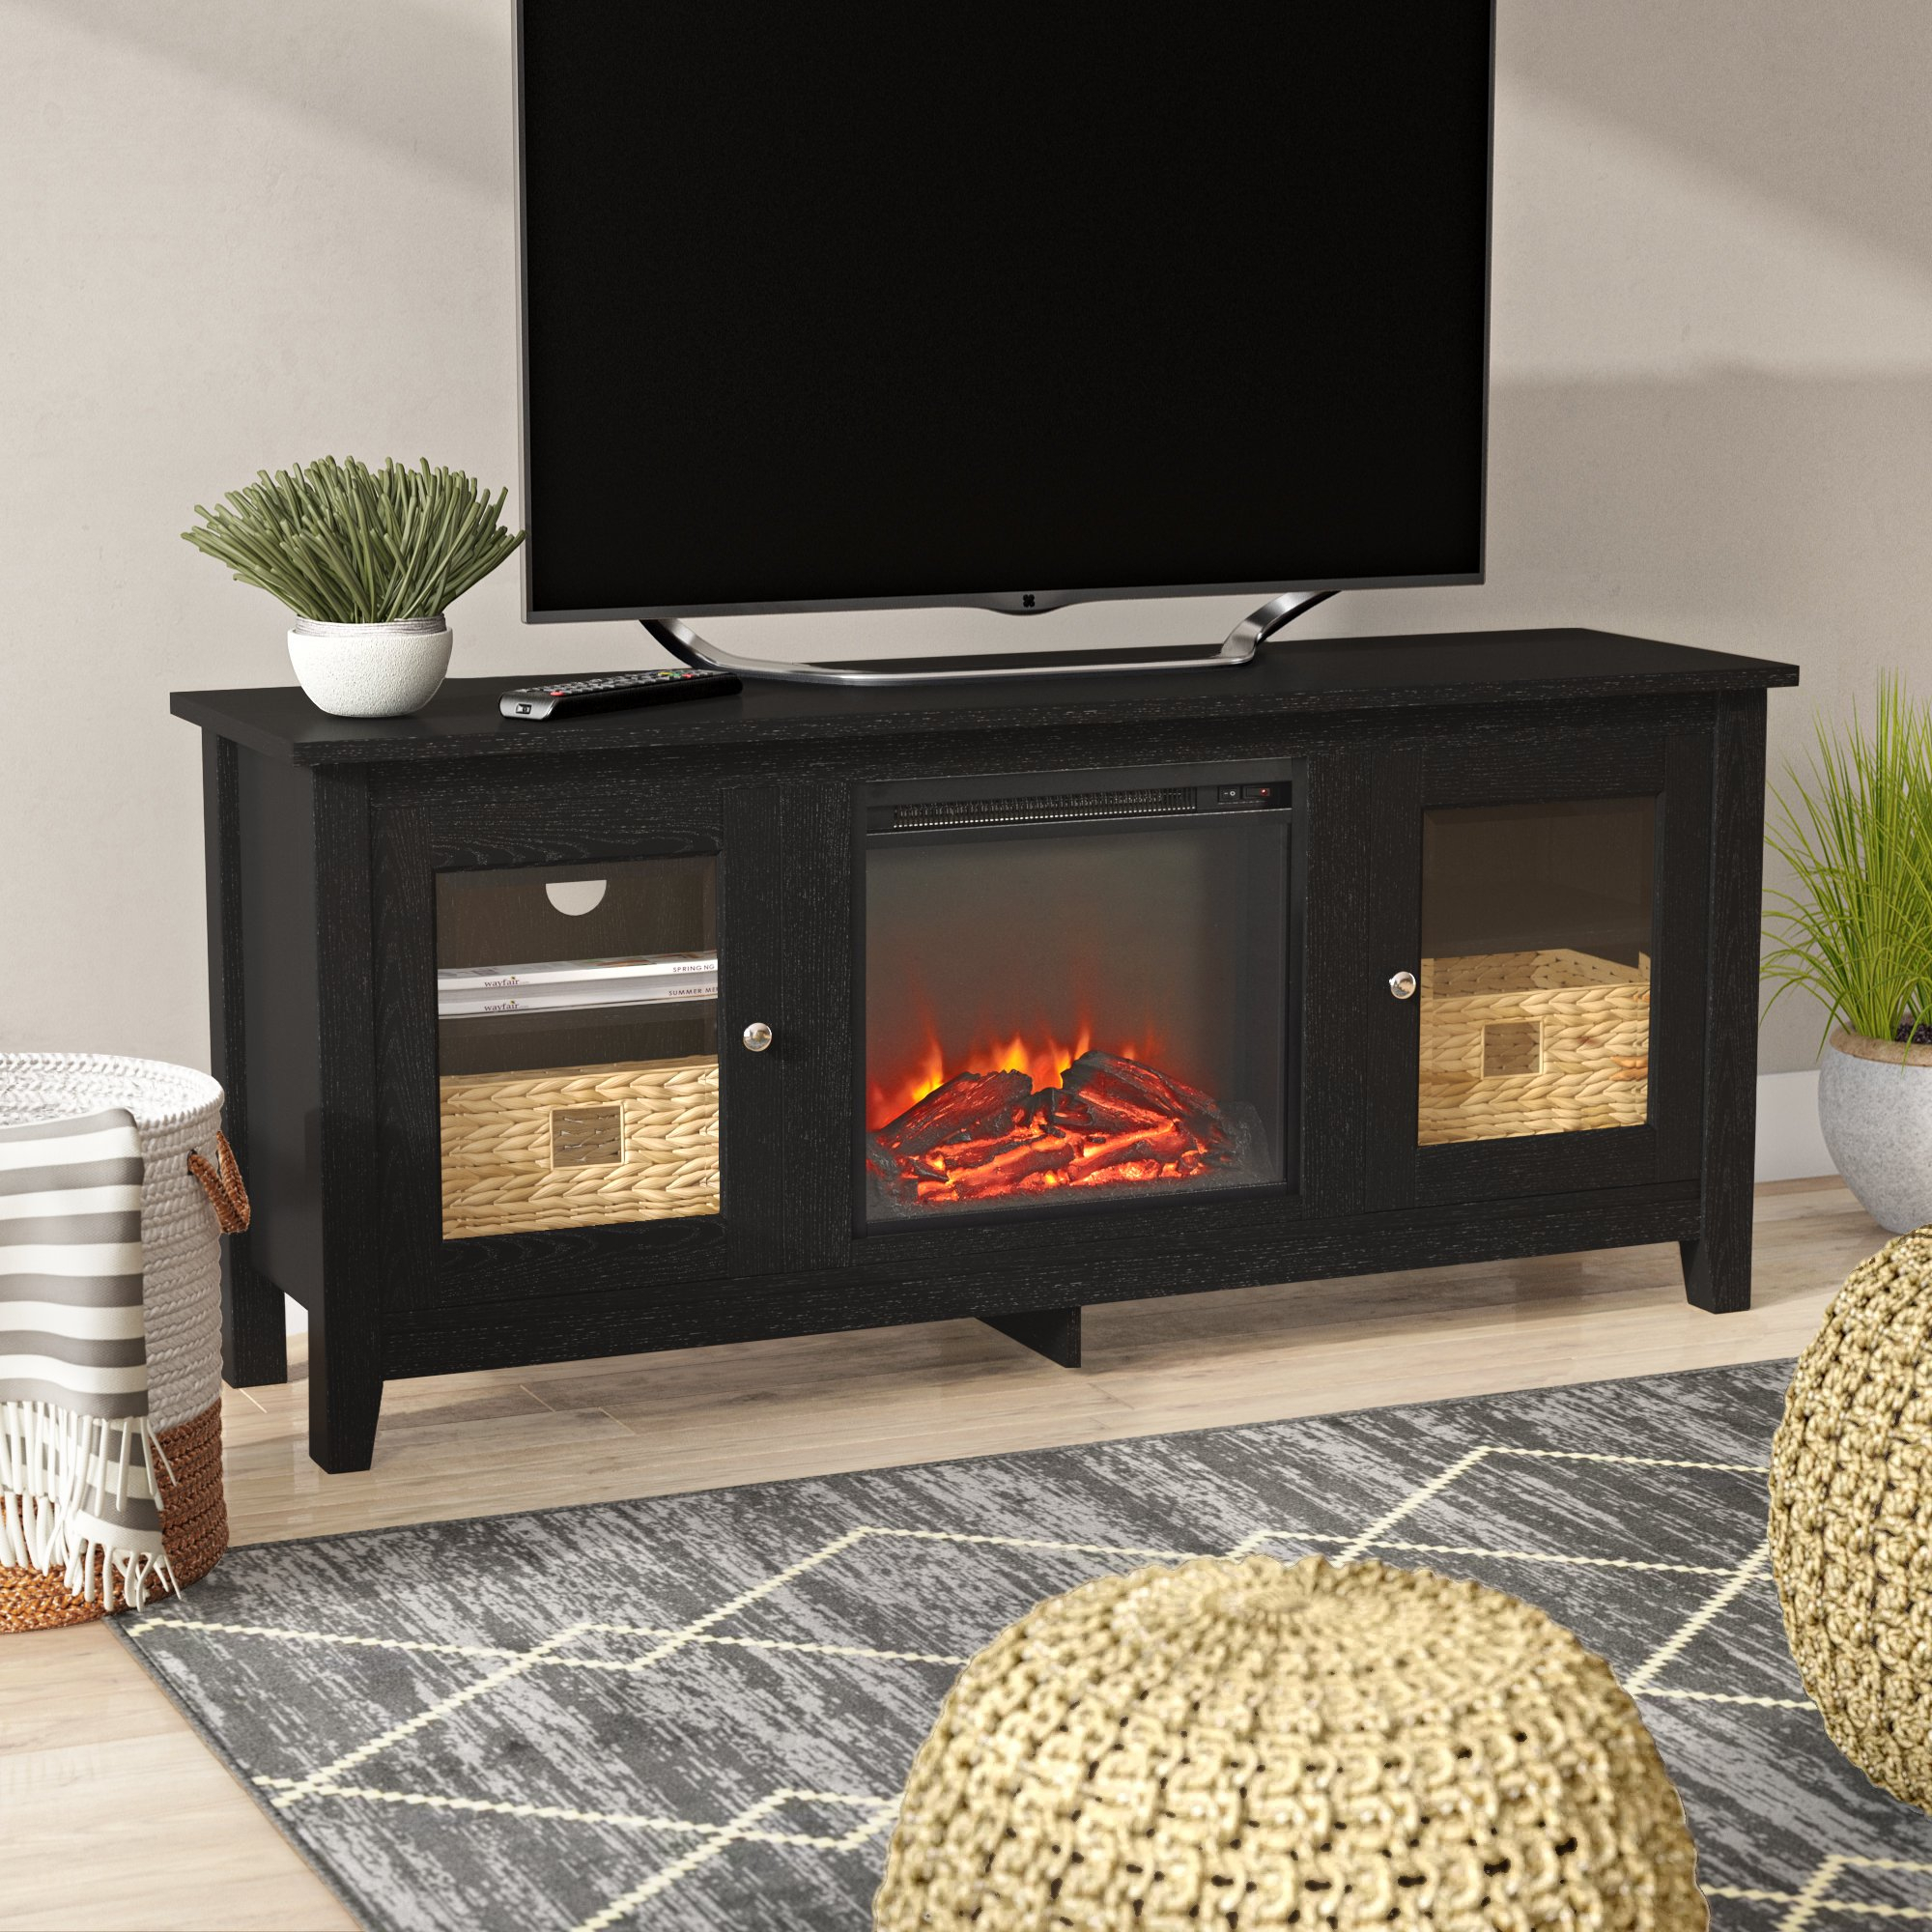 Fireplace Tv Stands & Entertainment Centers You'll Love | Wayfair (View 15 of 30)